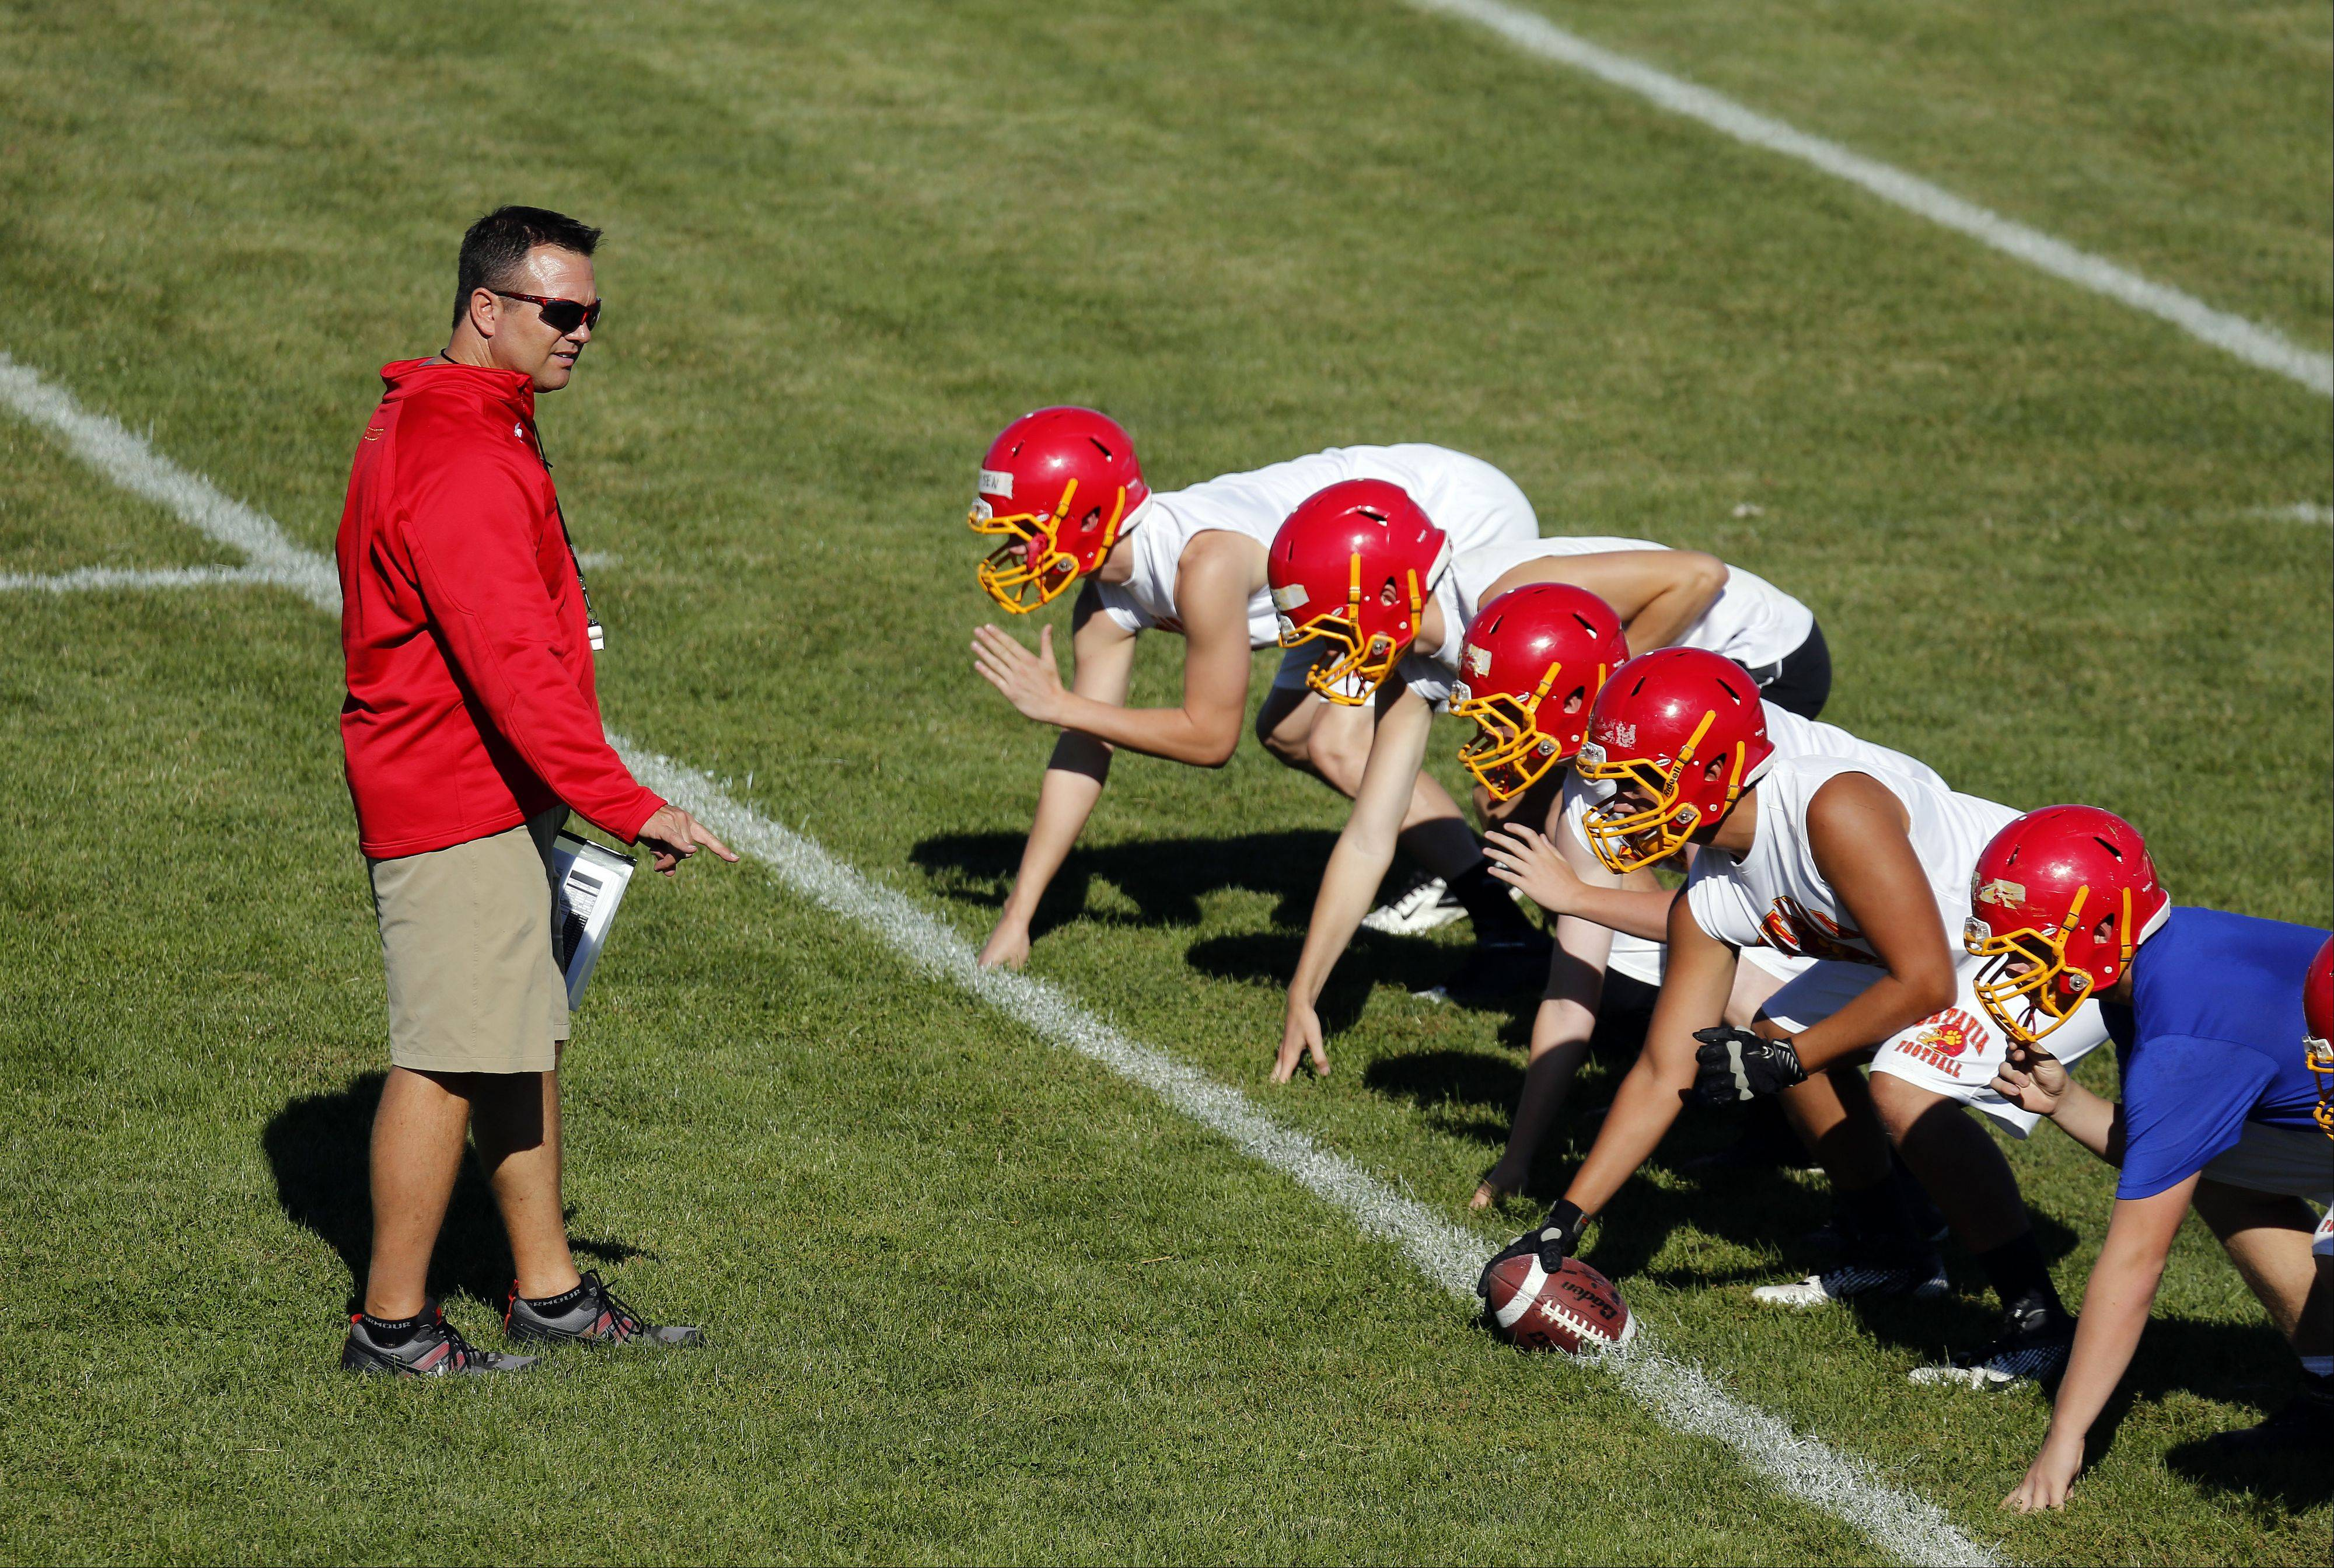 Brian Hill/bhill@dailyherald.comBatavia coach Dennis Piron works with his team during the first day of football practice at Batavia High School Wednesday.